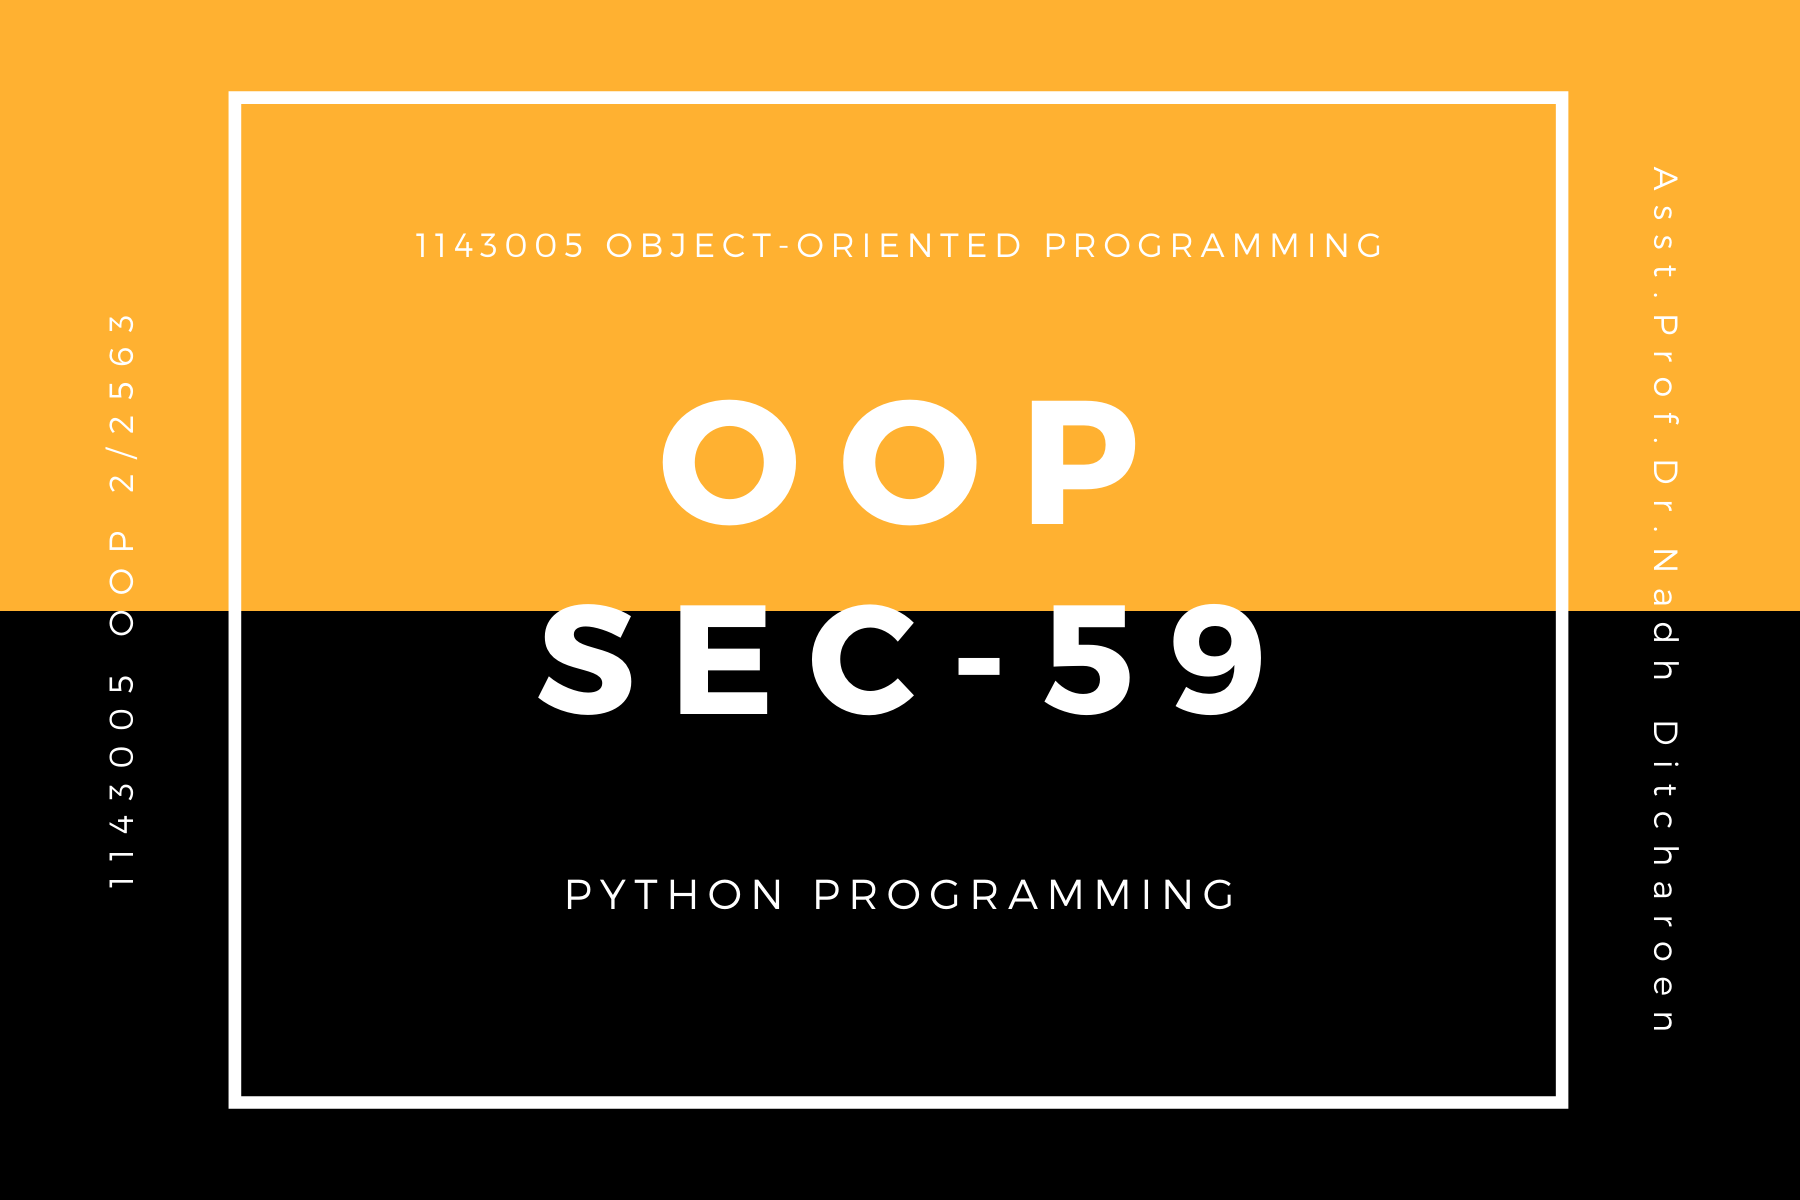 1143005 Object-Oriented Programming